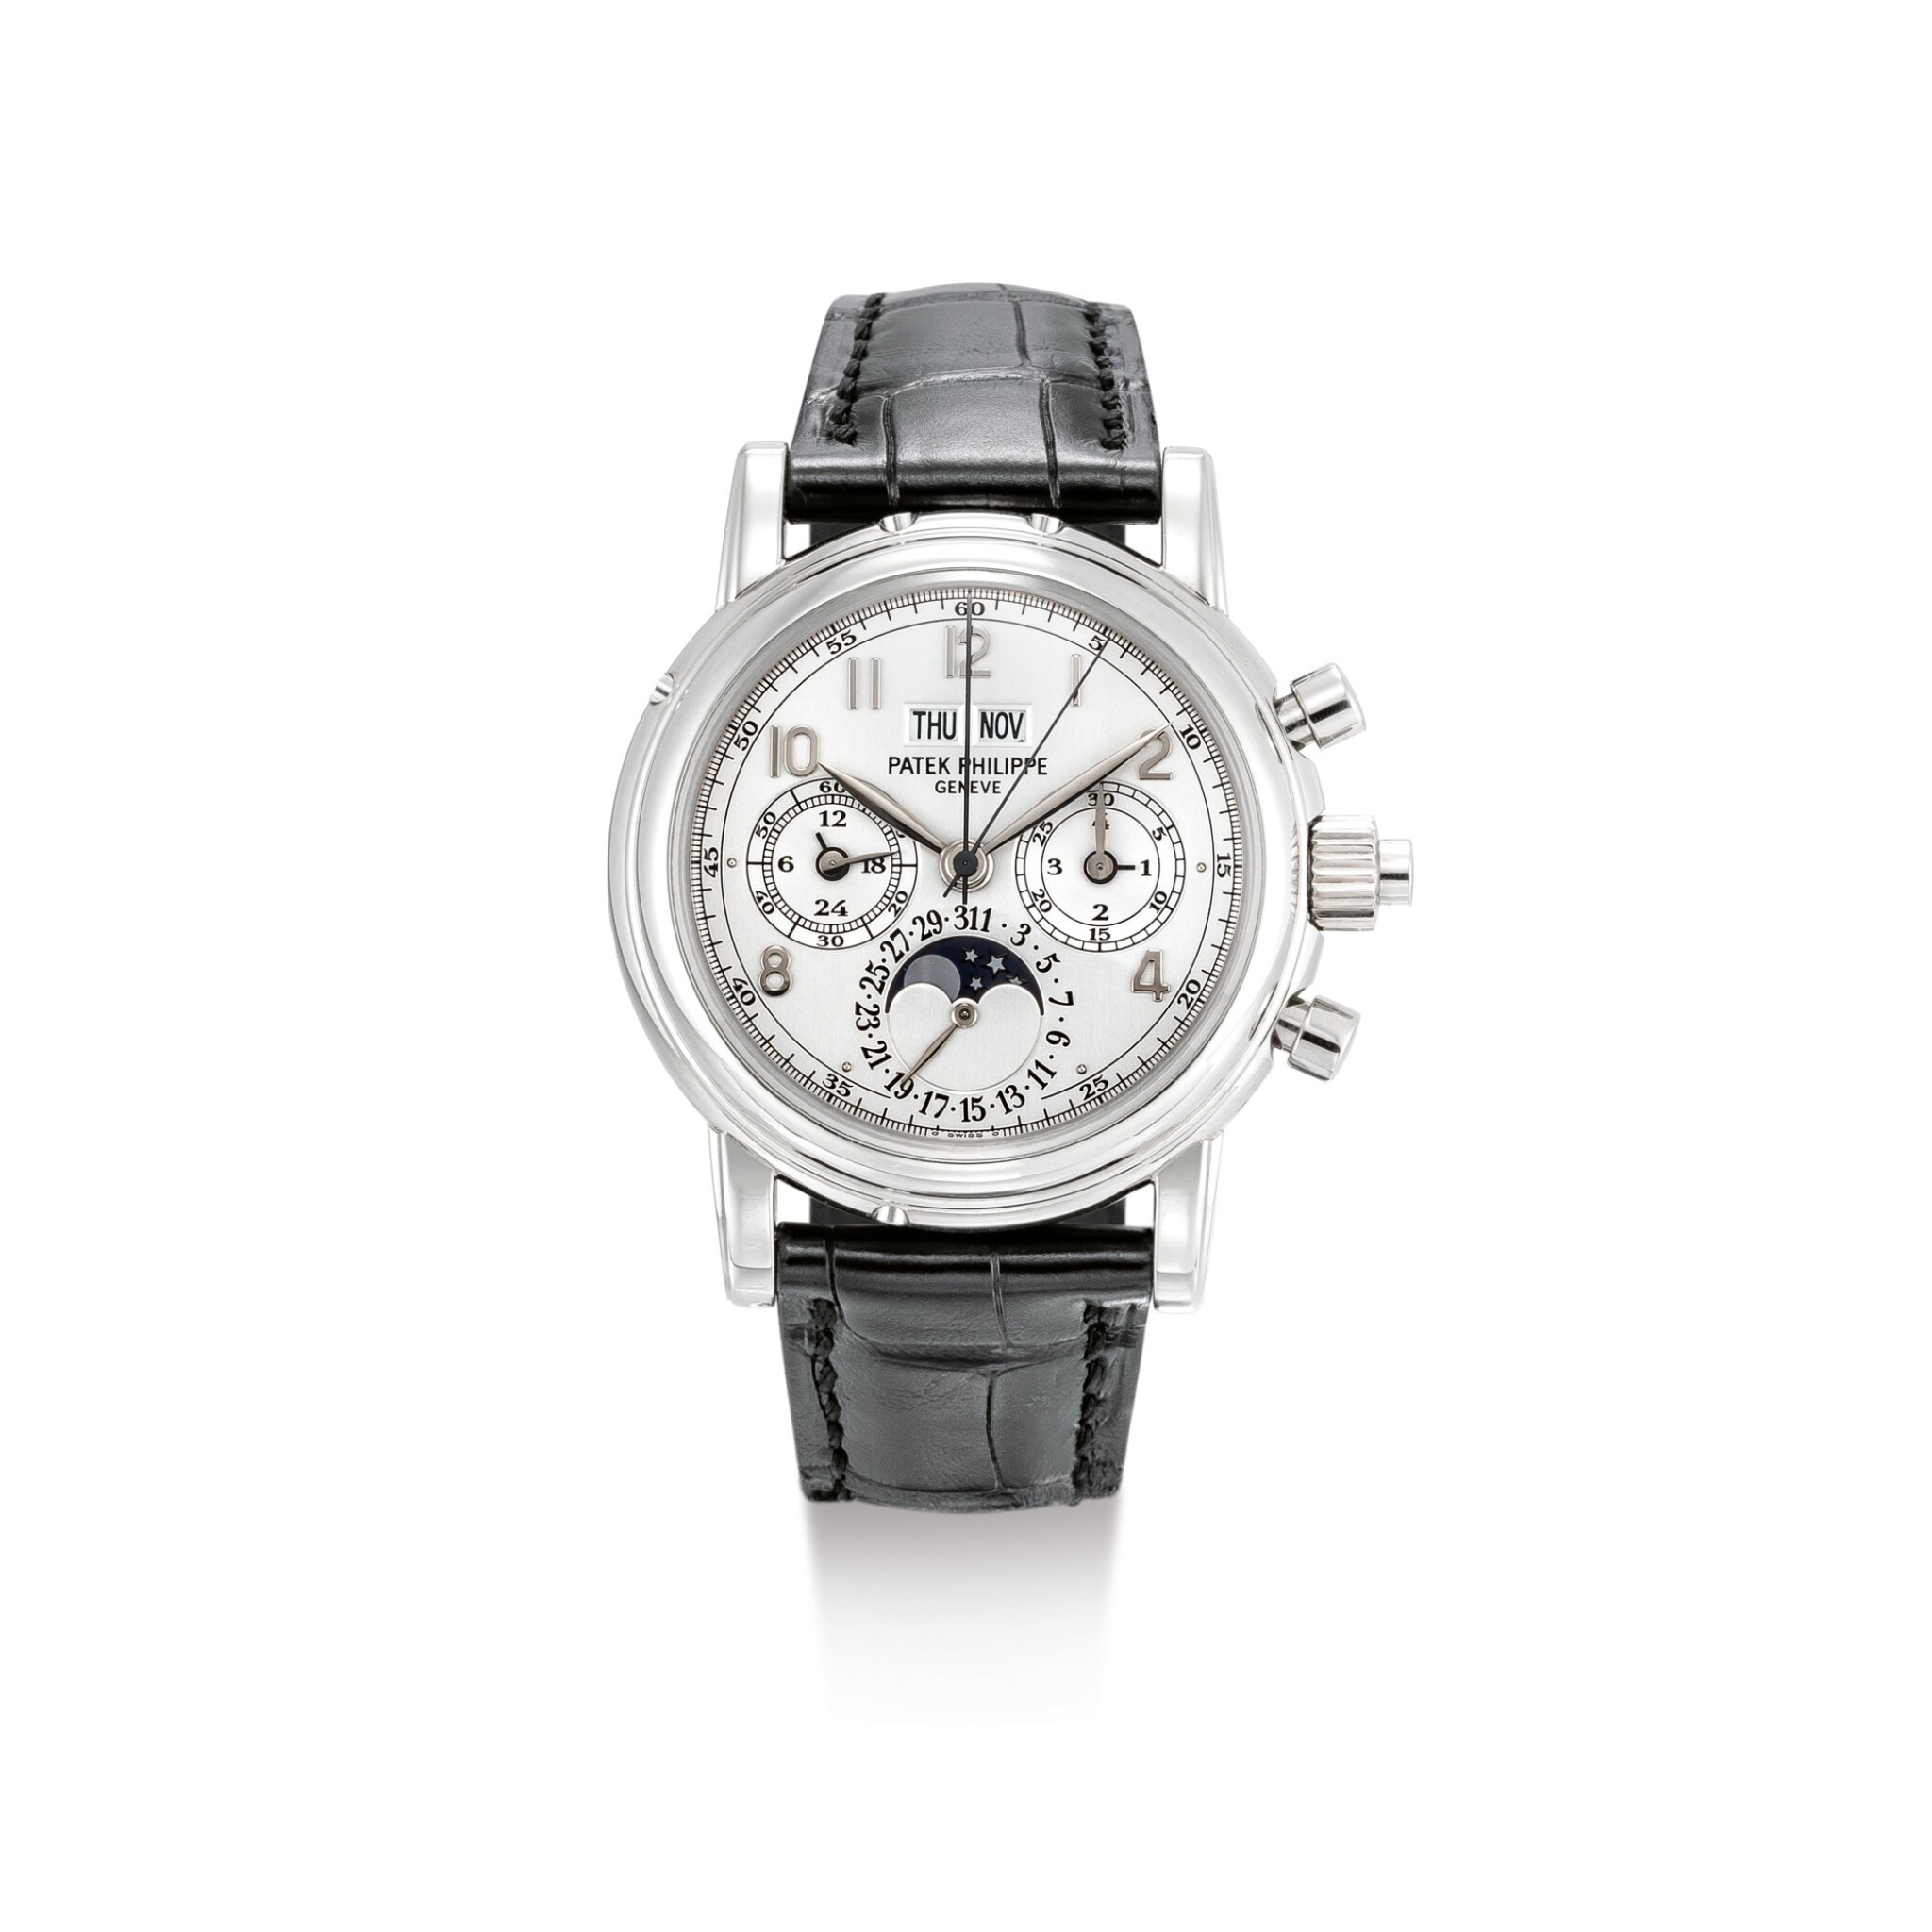 "View full screen - View 1 of Lot 2099. PATEK PHILIPPE | REFERENCE 5004, A WHITE GOLD PERPETUAL CALENDAR SPLIT SECONDS CHRONOGRAPH WRISTWATCH WITH MOON PHASES, 24 HOURS AND LEAP YEAR INDICATION, CIRCA 2007 | 百達翡麗 | ""型號5004 白金萬年曆追針計時腕錶,備月相、24小時及晝夜顯示,機芯編號879799,錶殼編號4040027,約2007年製""."